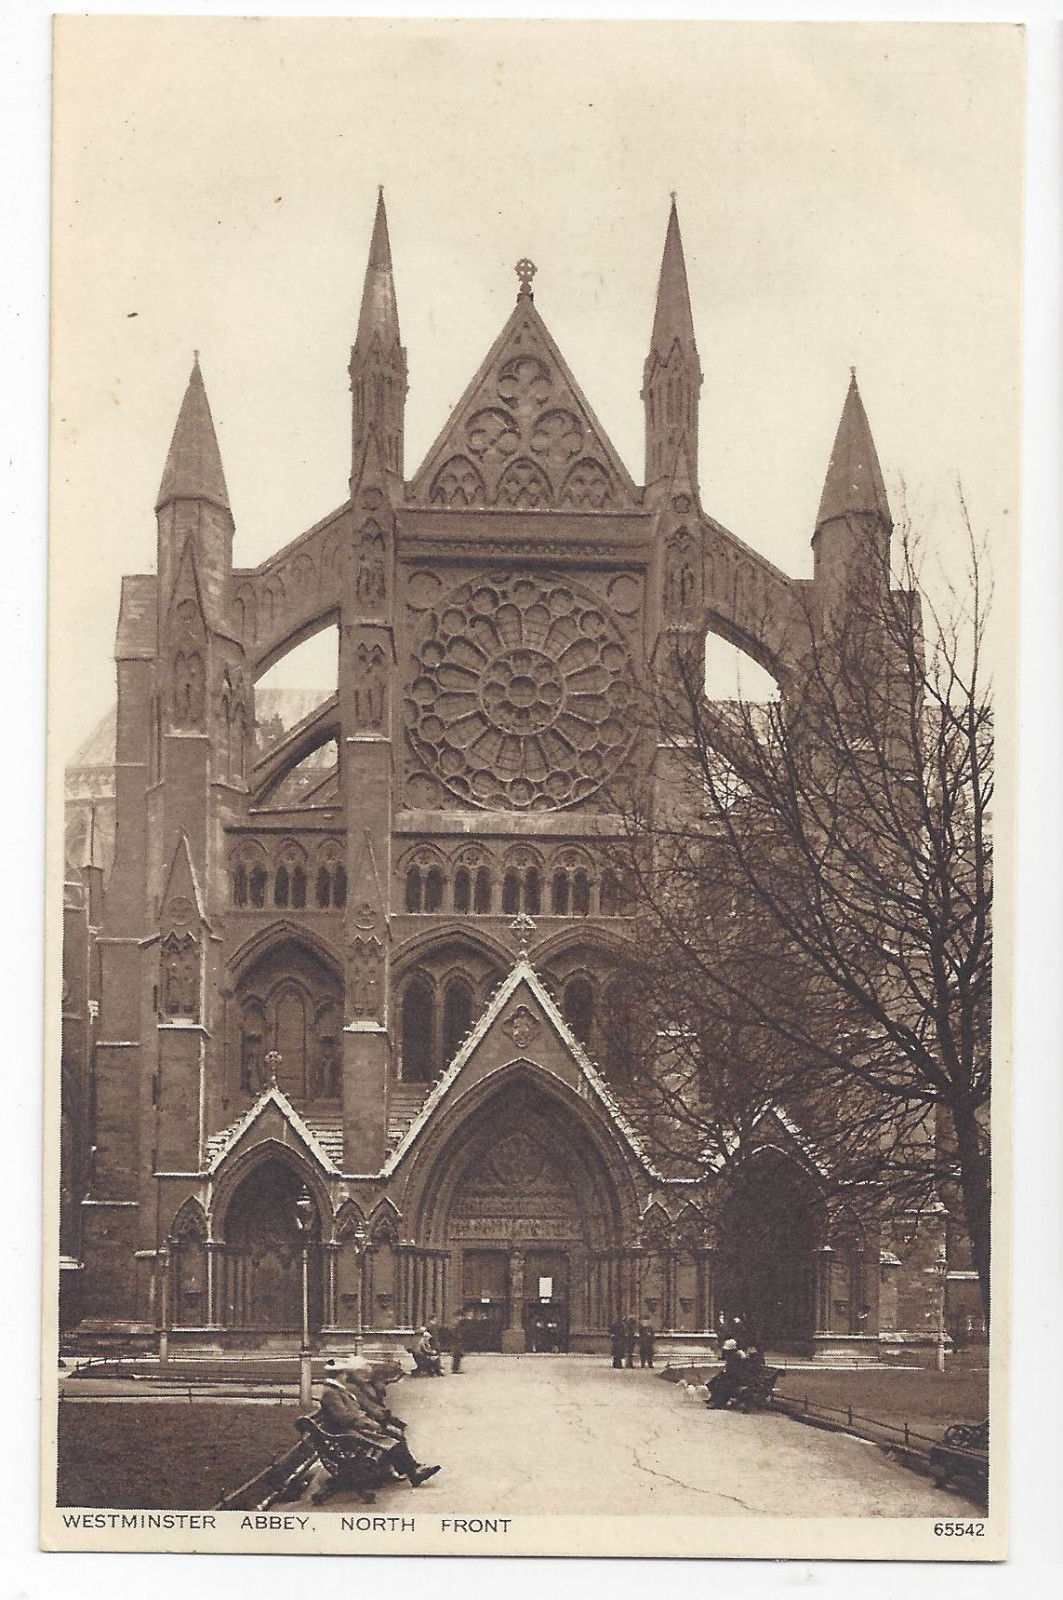 Primary image for UK London Westminster Abbey North Front ca 1920 Vintage Photochrom Postcard